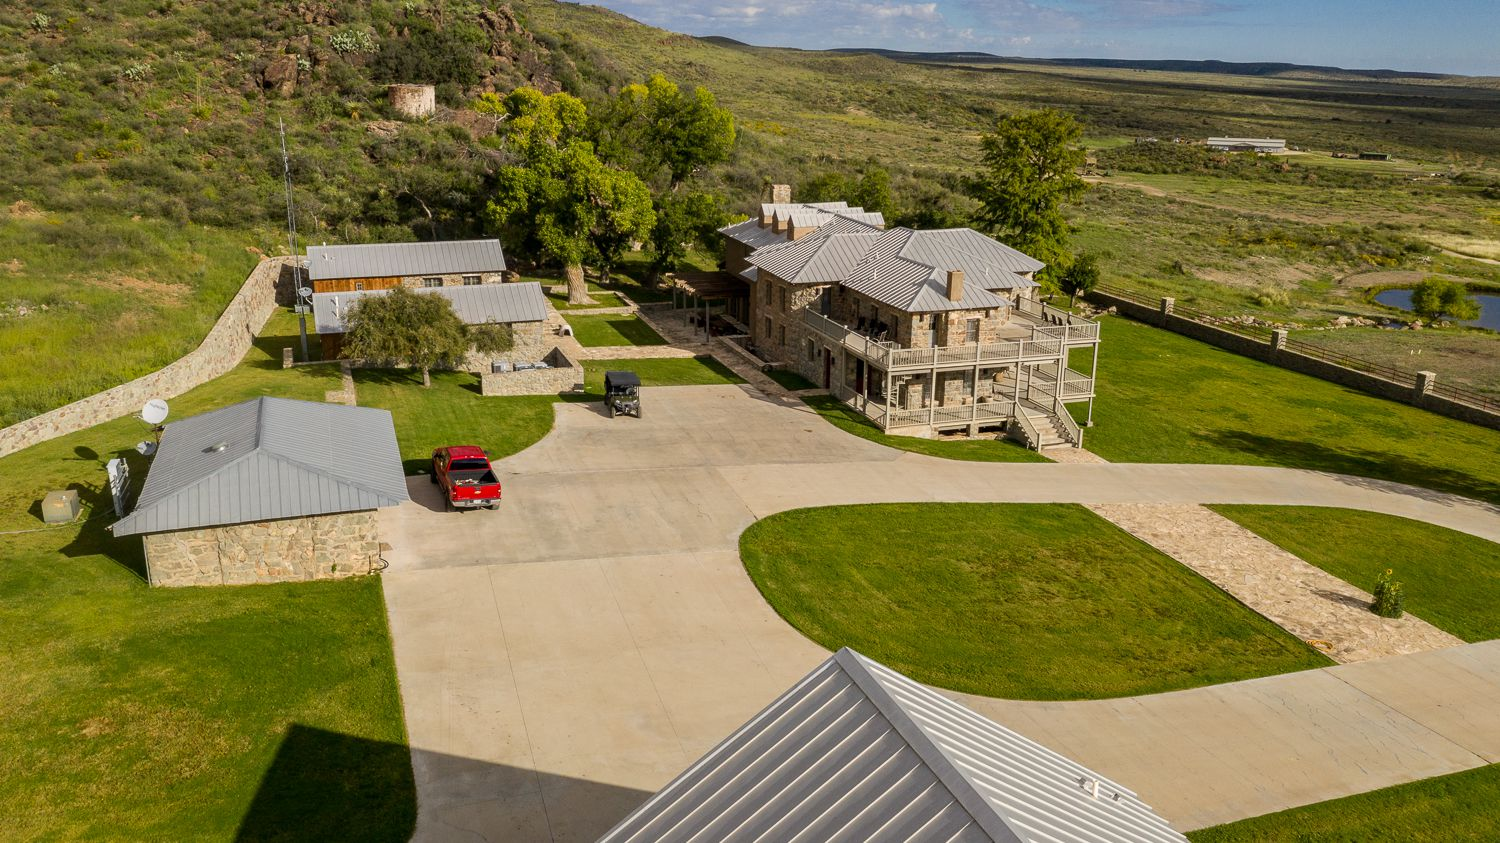 The KC7 Ranch includes a nearly 10,000 square foot lodge.